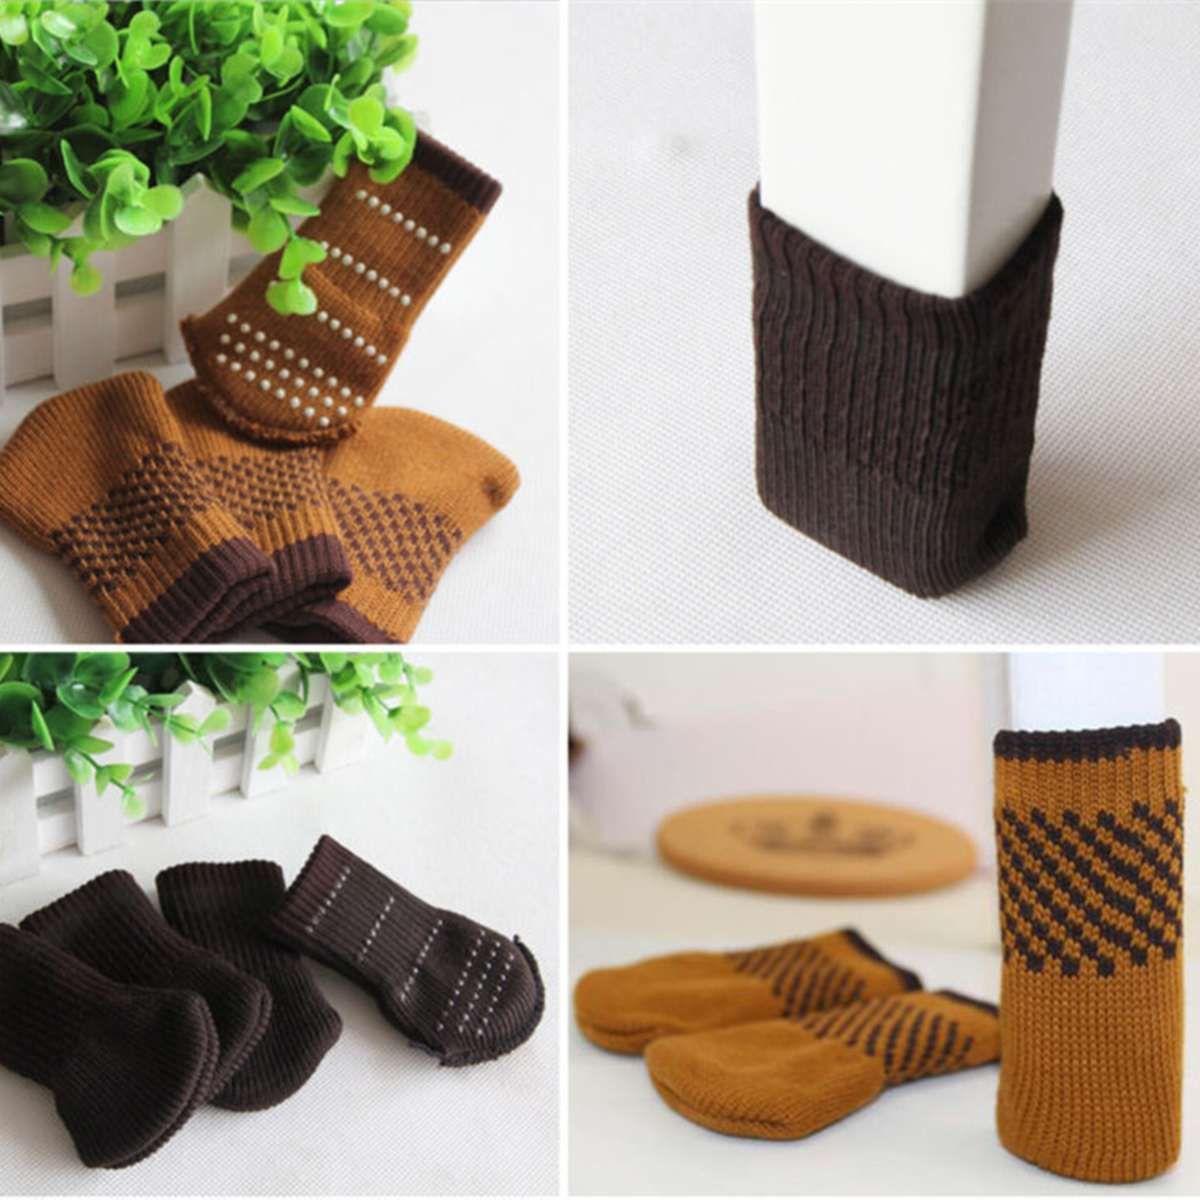 Table Furniture Feet Sleeve Cover Protectors 24Pcs Chair Leg Socks Cloth Gloves Floor Protection Knitting Wool Socks Anti-slip